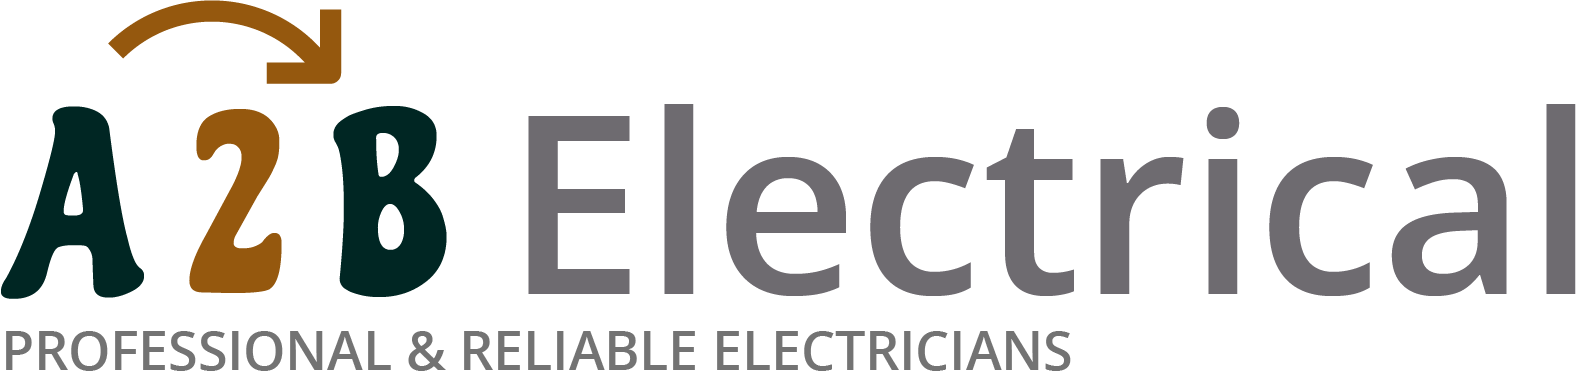 If you have electrical wiring problems in Kentish Town, we can provide an electrician to have a look for you.